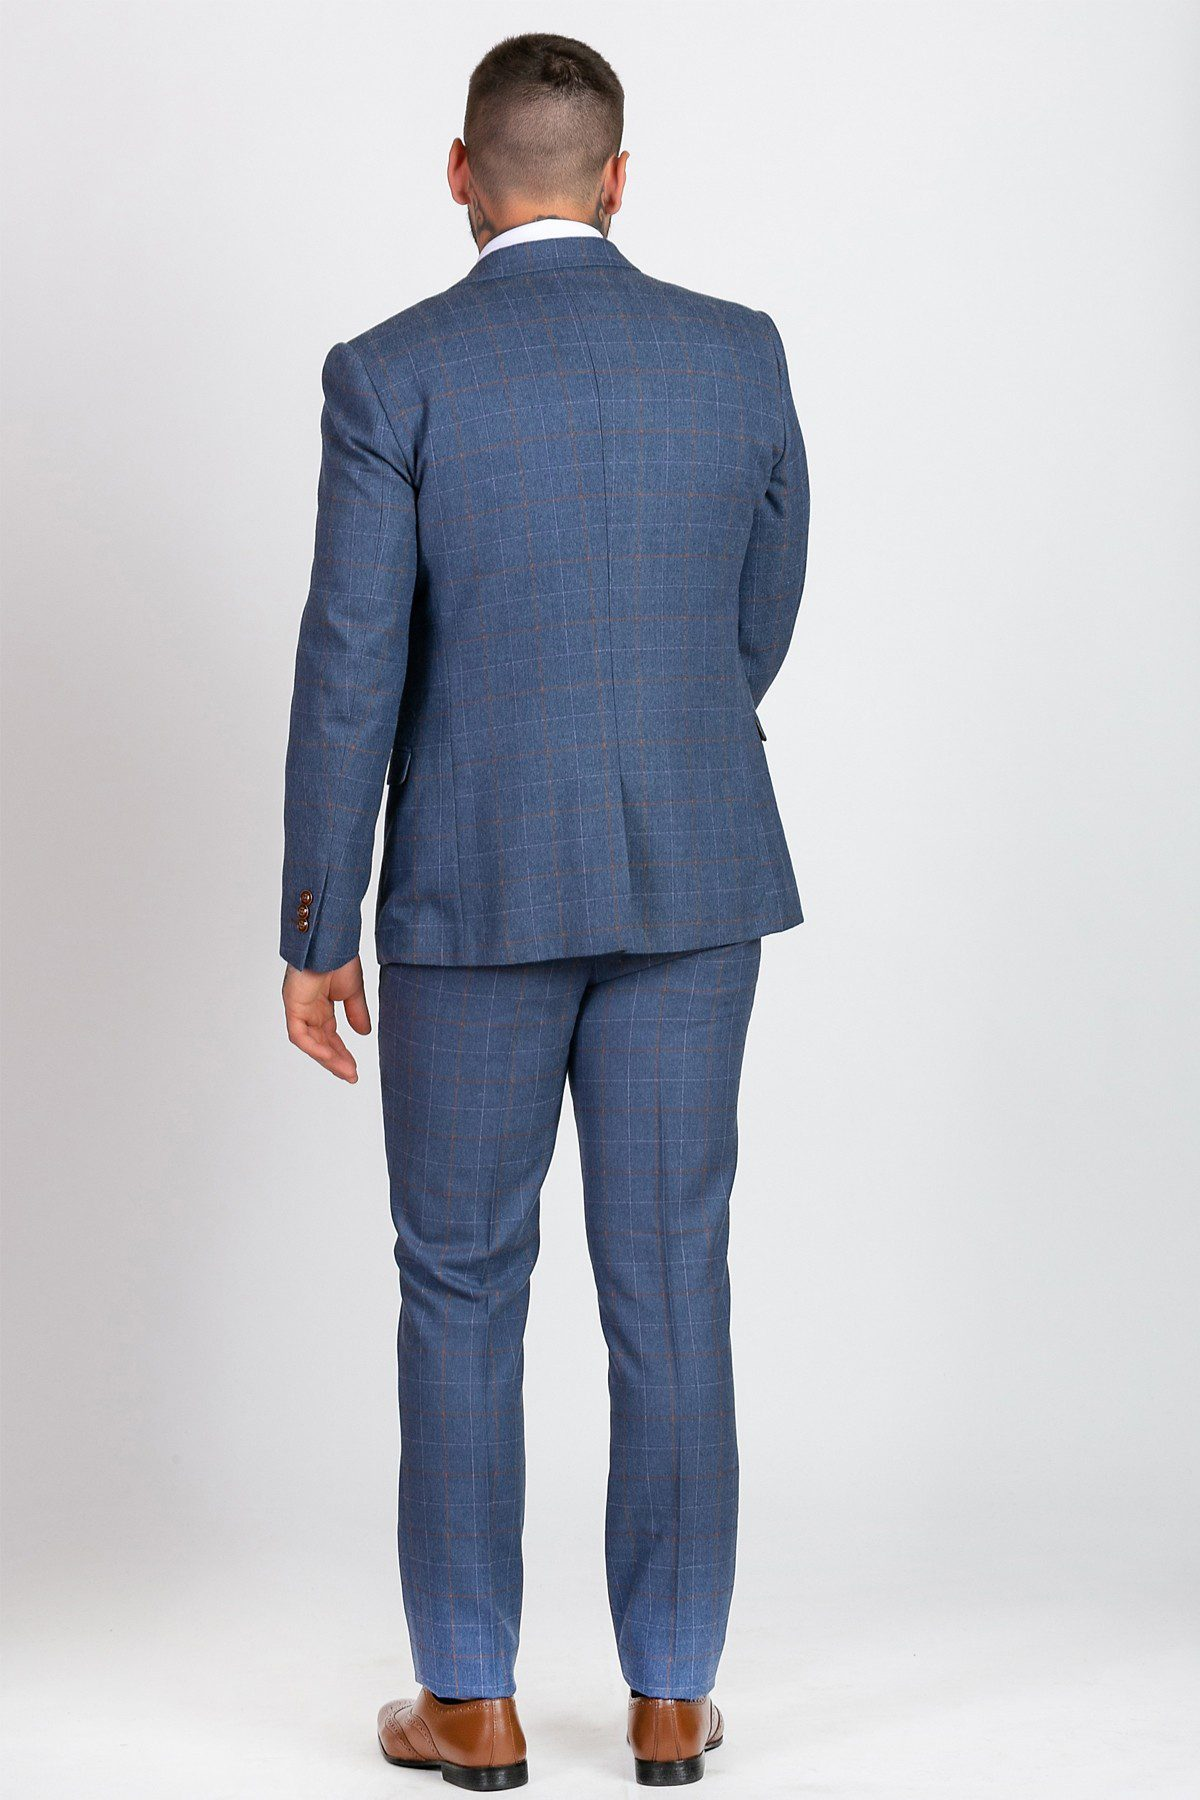 Matthew Sky Blue Tweed Check Three Piece Suit | Suits Distributors